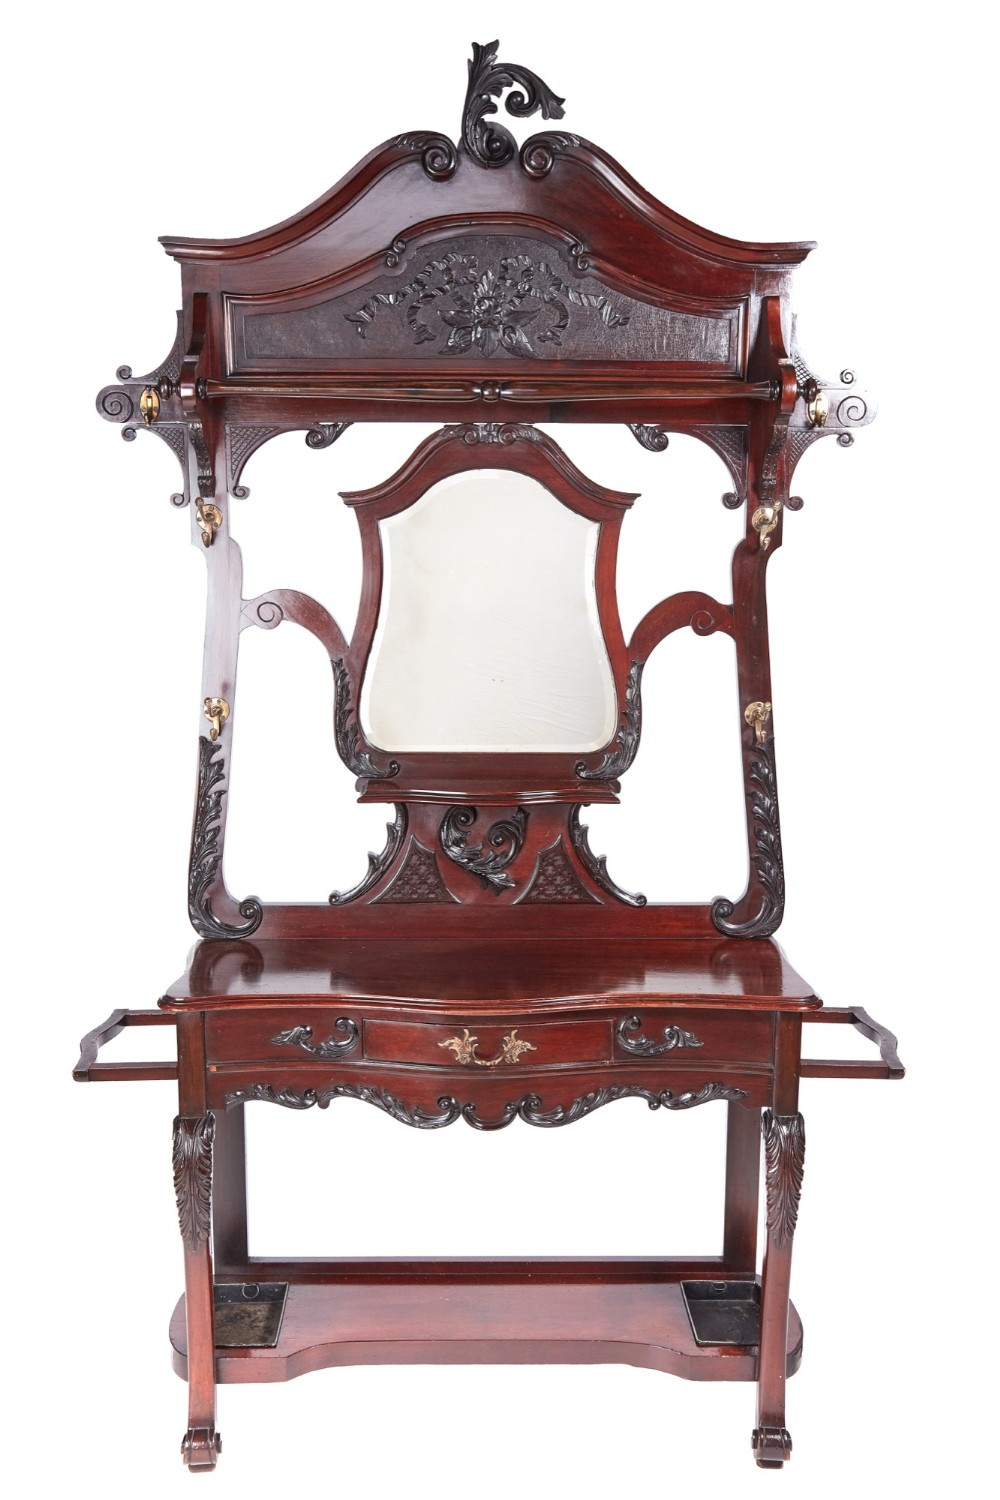 quality 19th century victorian antique carved mahogany hall stand